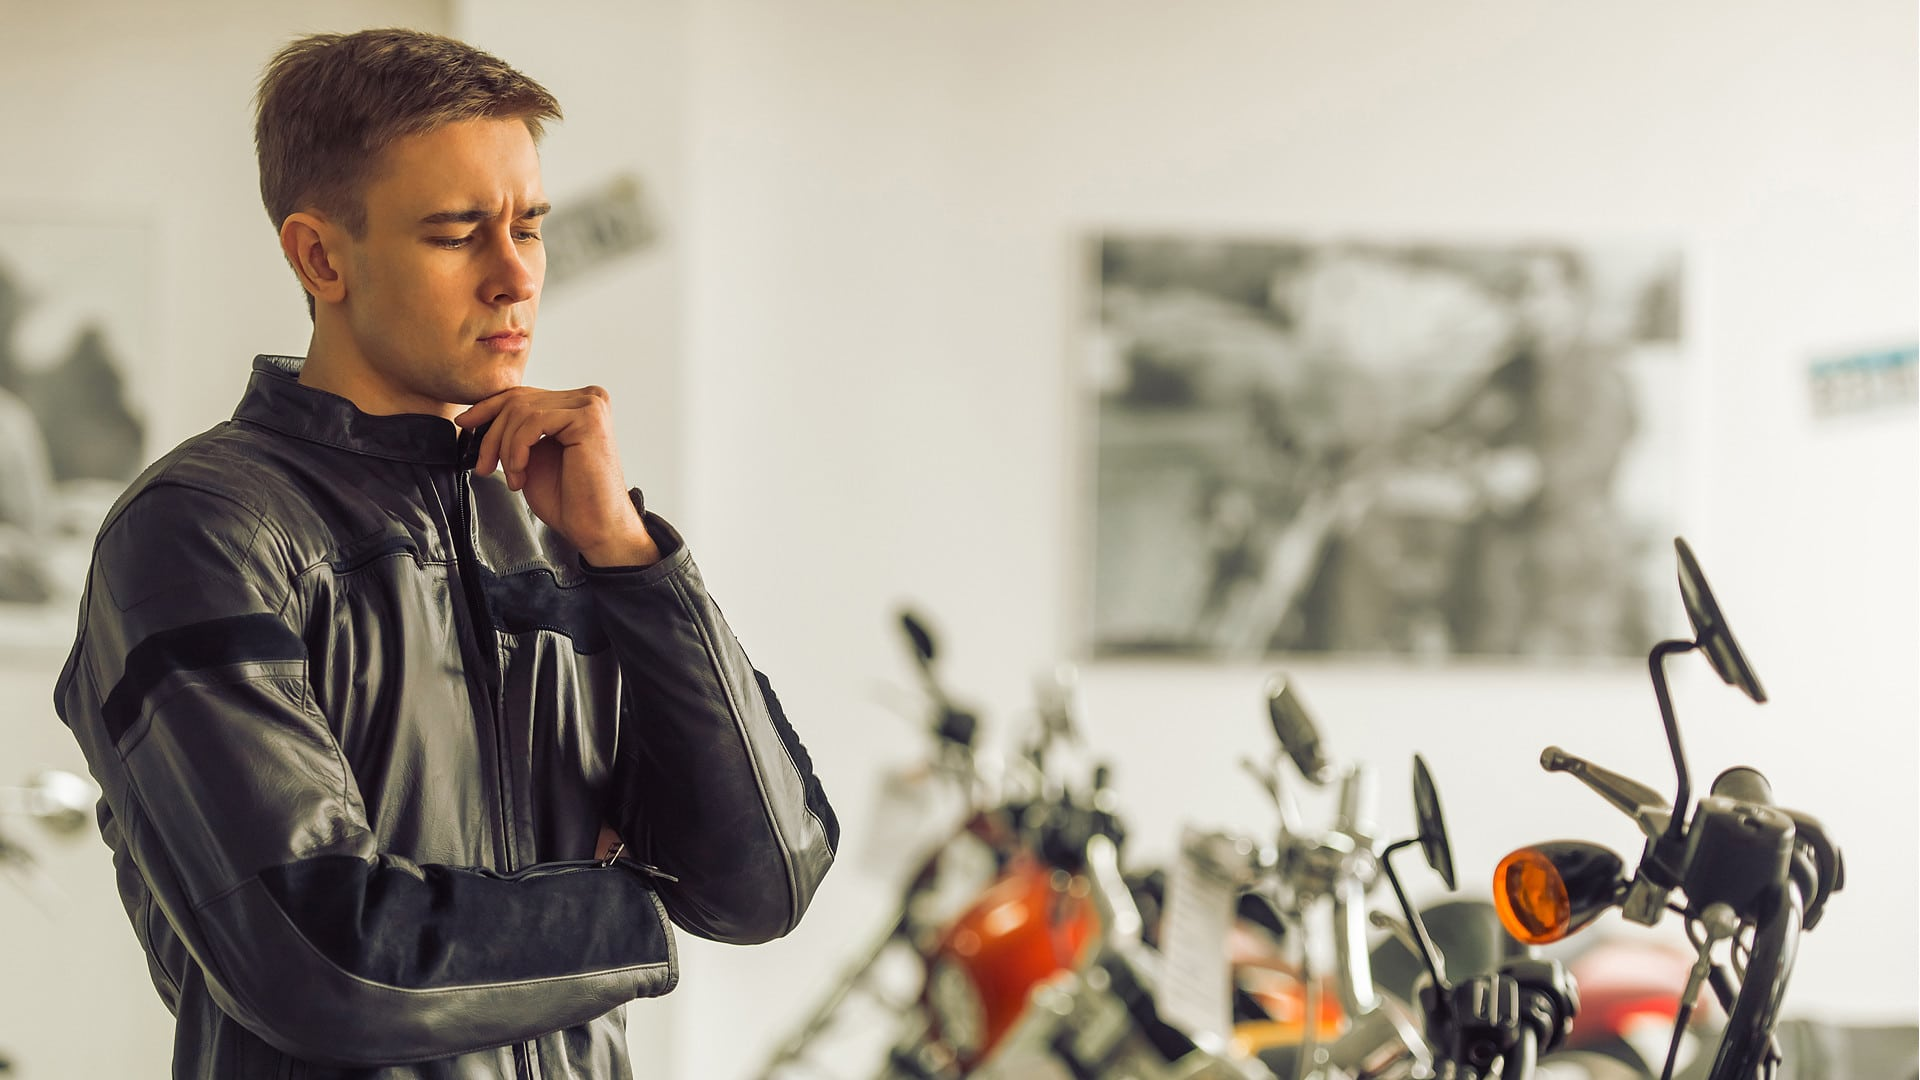 Man thinking and choosing a motorcycle